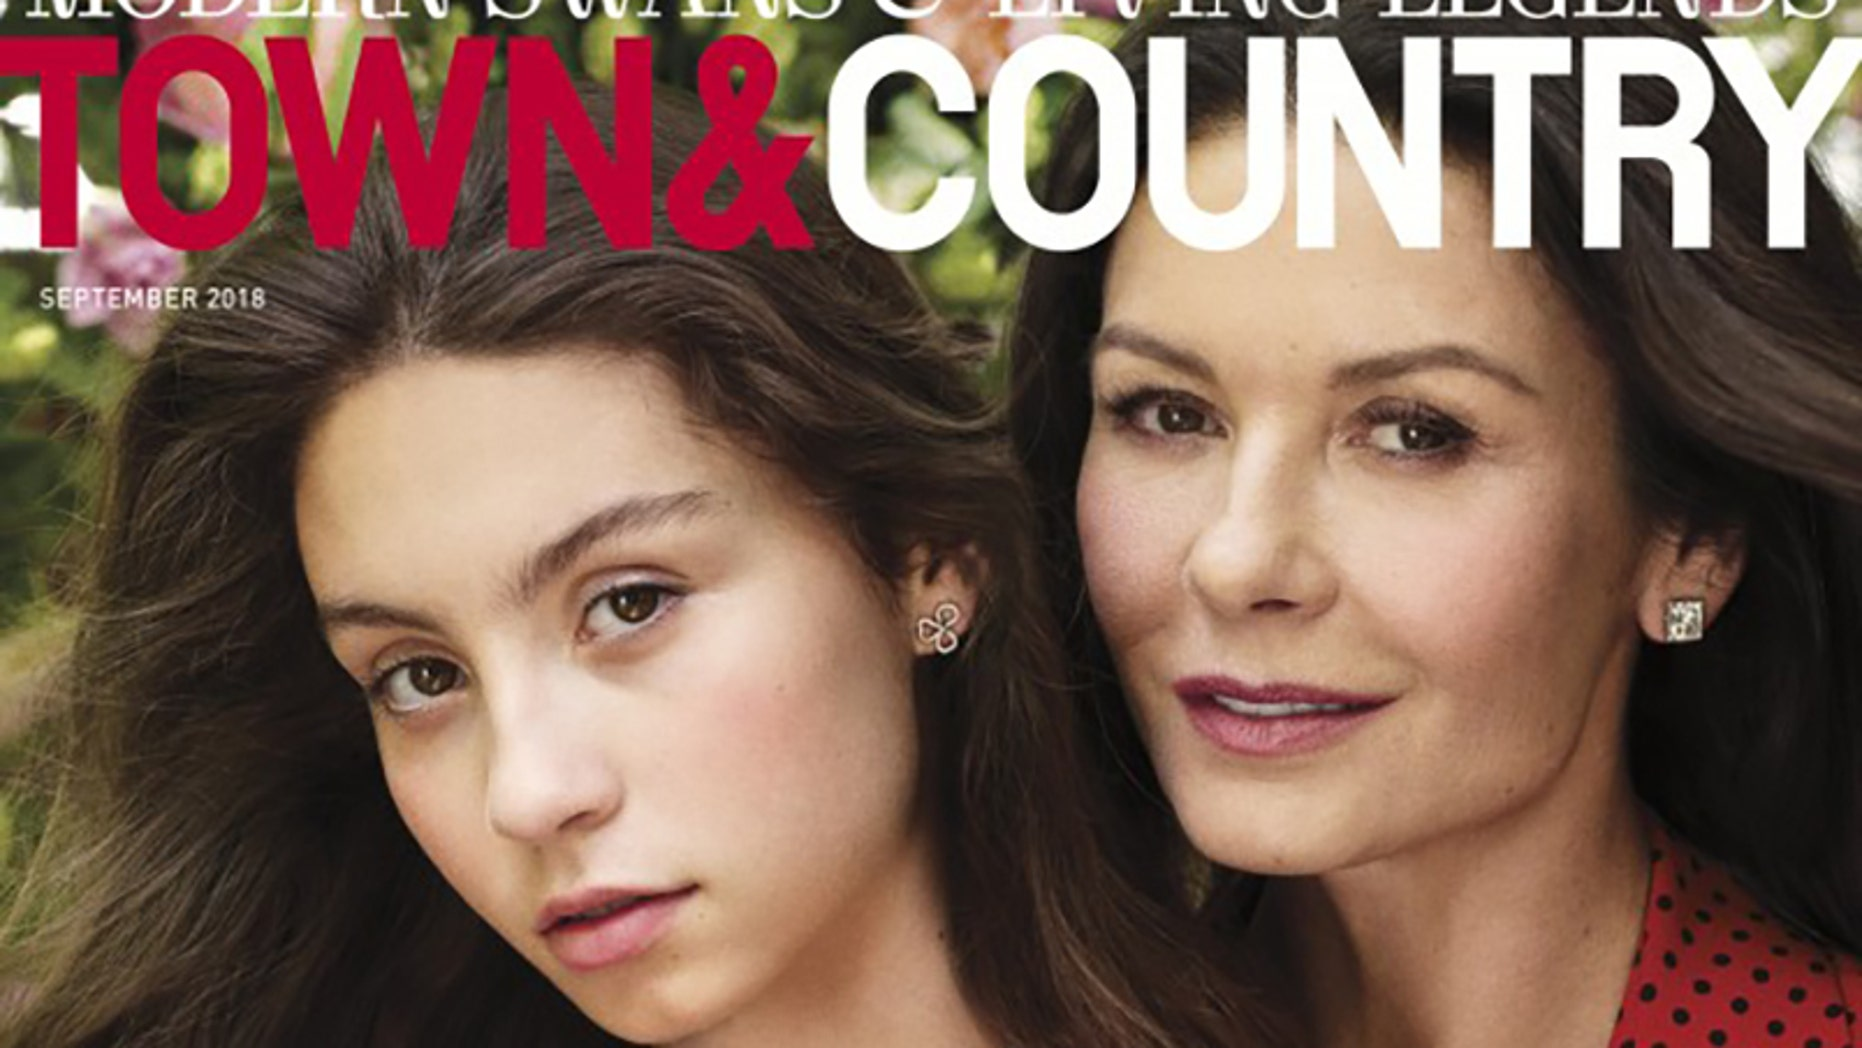 Catherine Zeta-Jones and her 15-year-old daughter are on the cover of Town & Country's September cover.